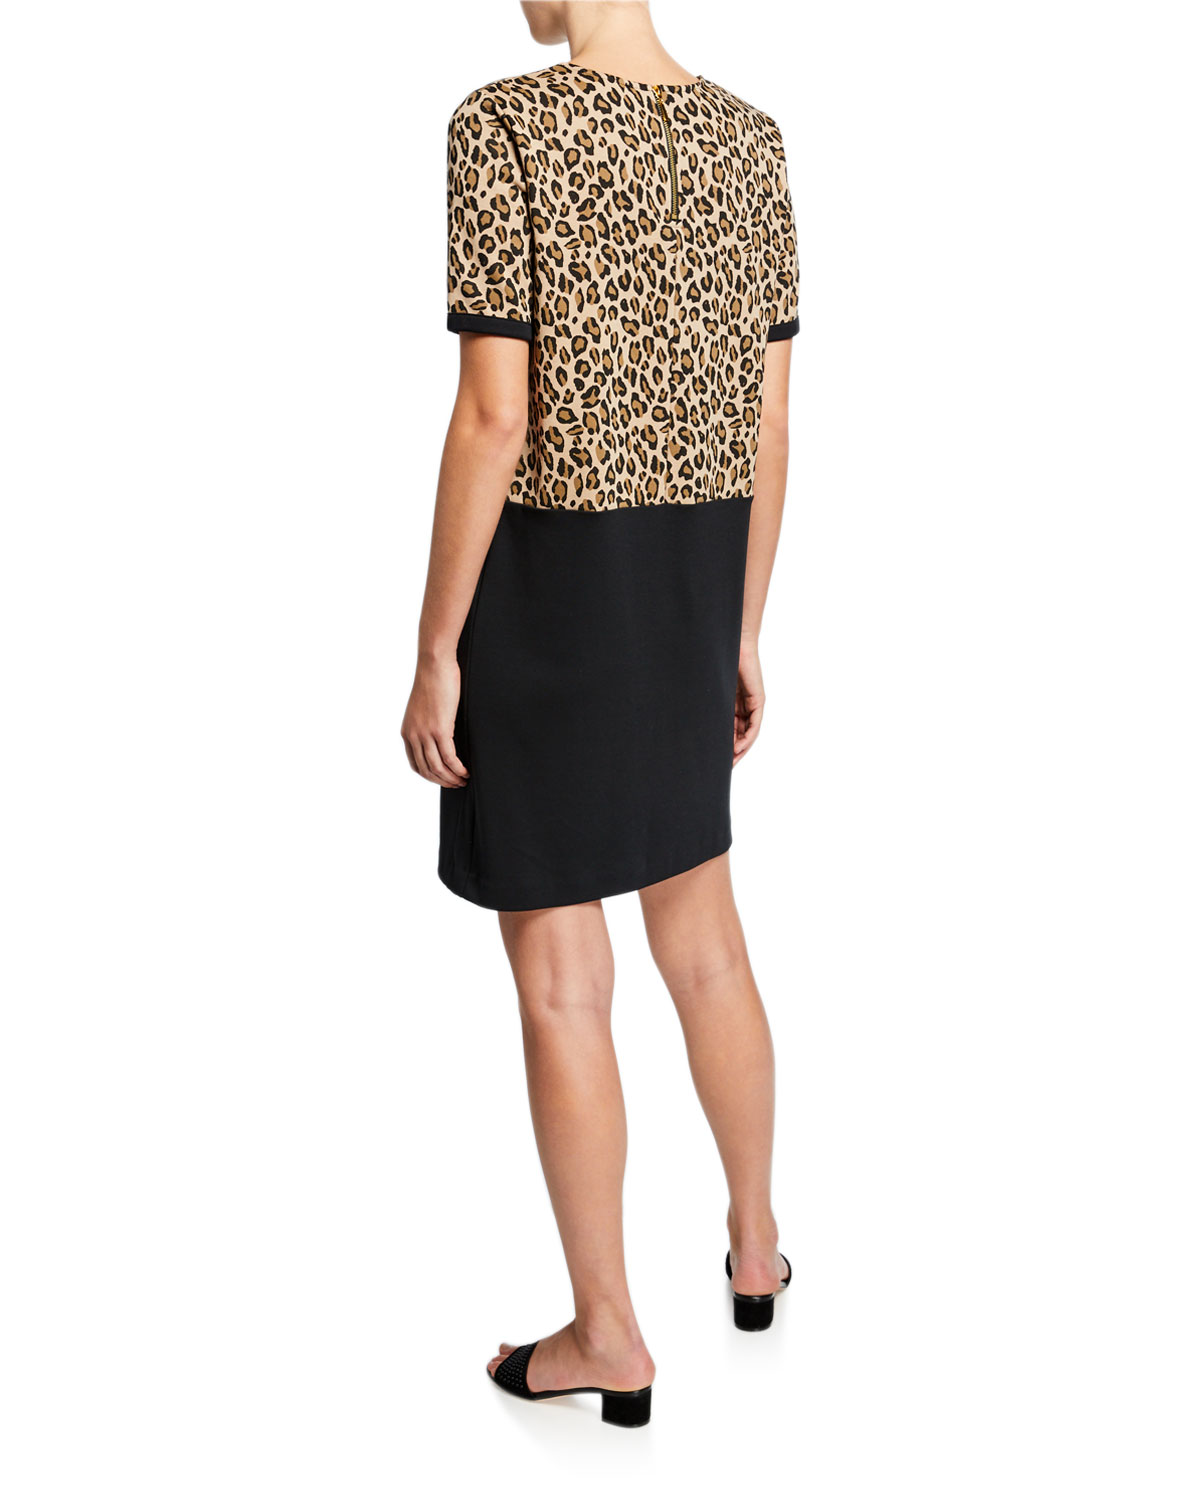 Plus Size Colorblock Leopard Print Short-Sleeve Cotton Dress